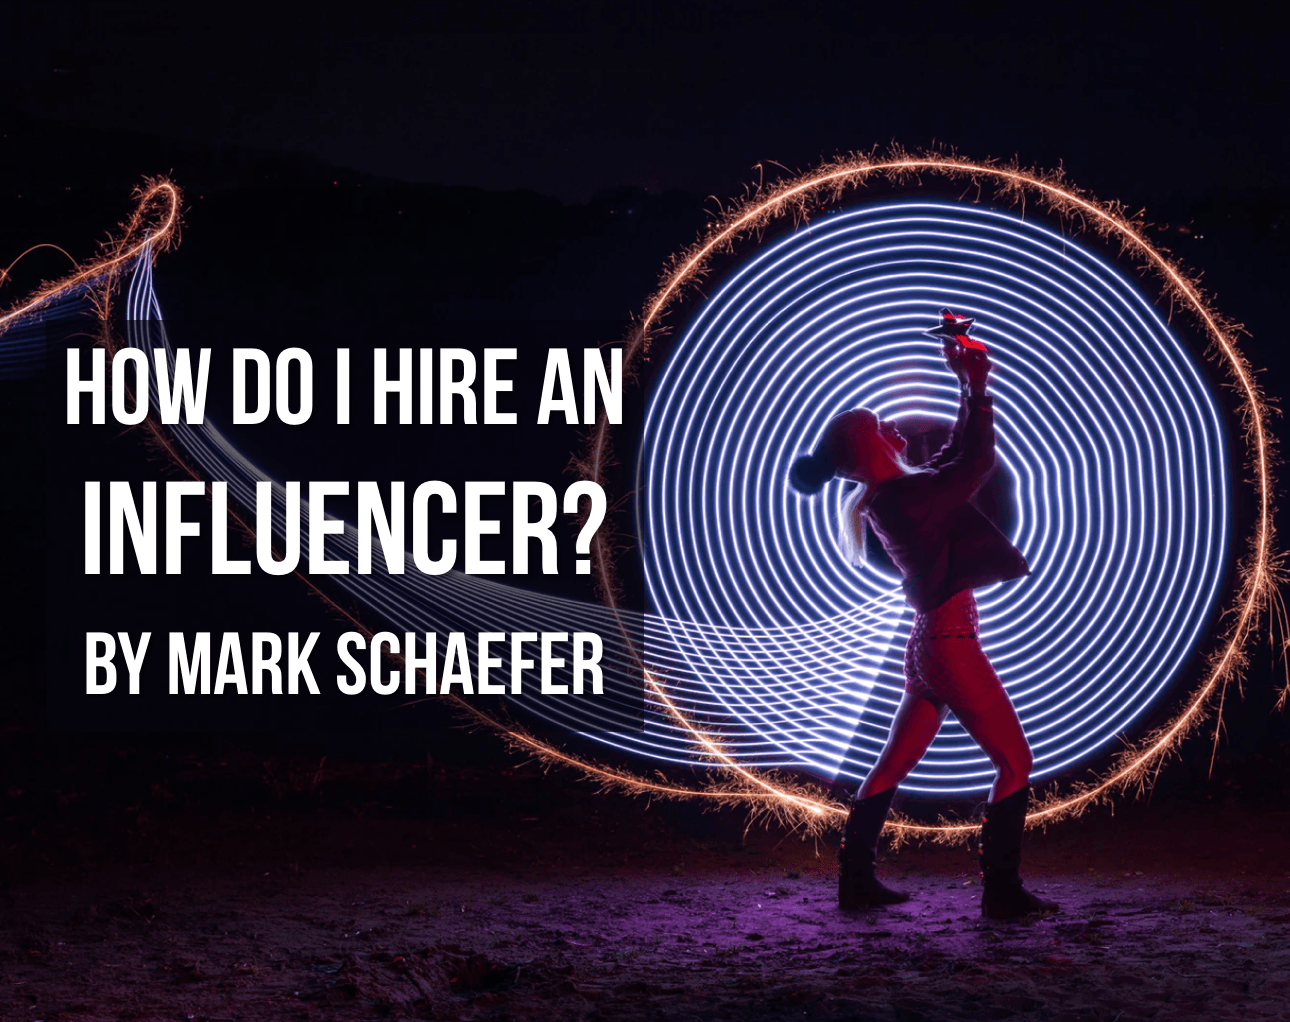 How to hire an influencer for your business | Schaefer Marketing Solutions: We Help Businesses {grow}